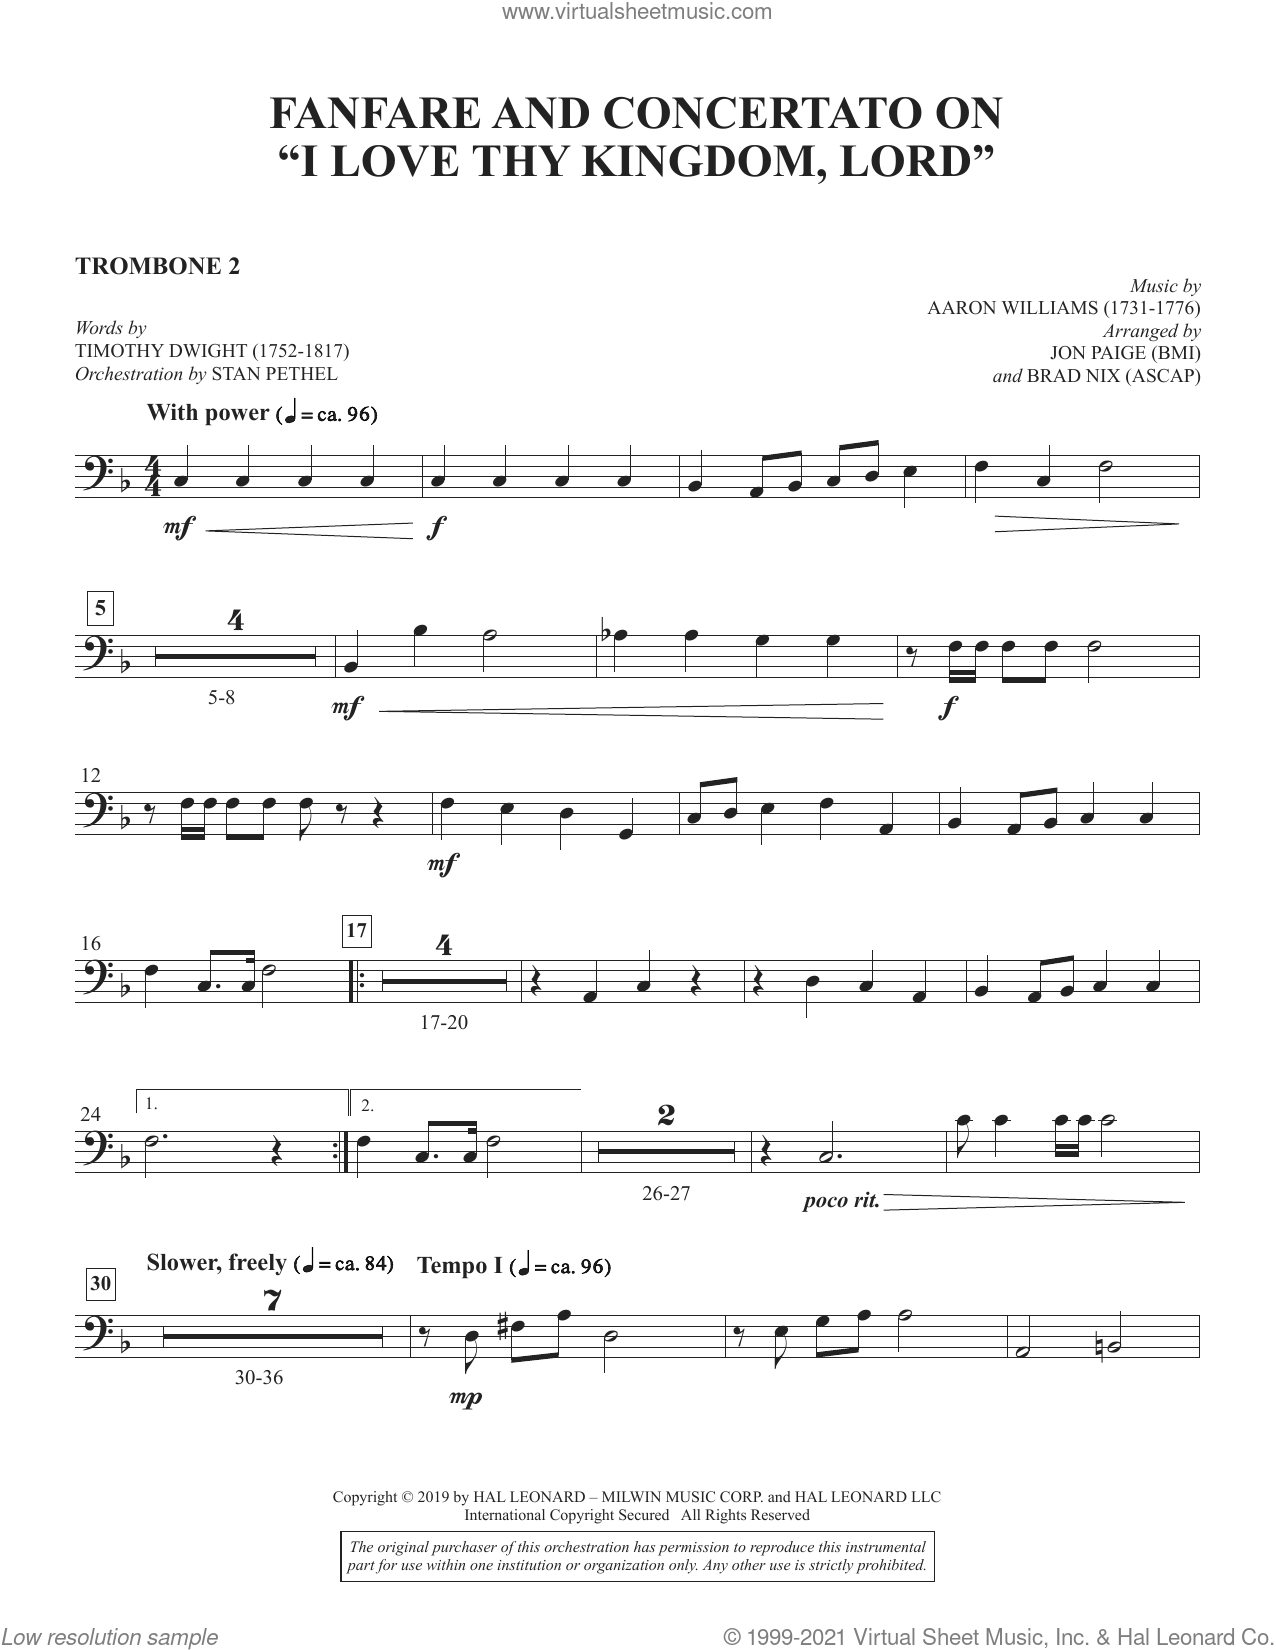 Fanfare and Concertato on 'I Love Thy Kingdom, Lord' (arr. Jon Paige and Brad Nix) sheet music for orchestra/band (trombone 2) by Timothy Dwight, Brad Nix and Jon Paige, intermediate skill level